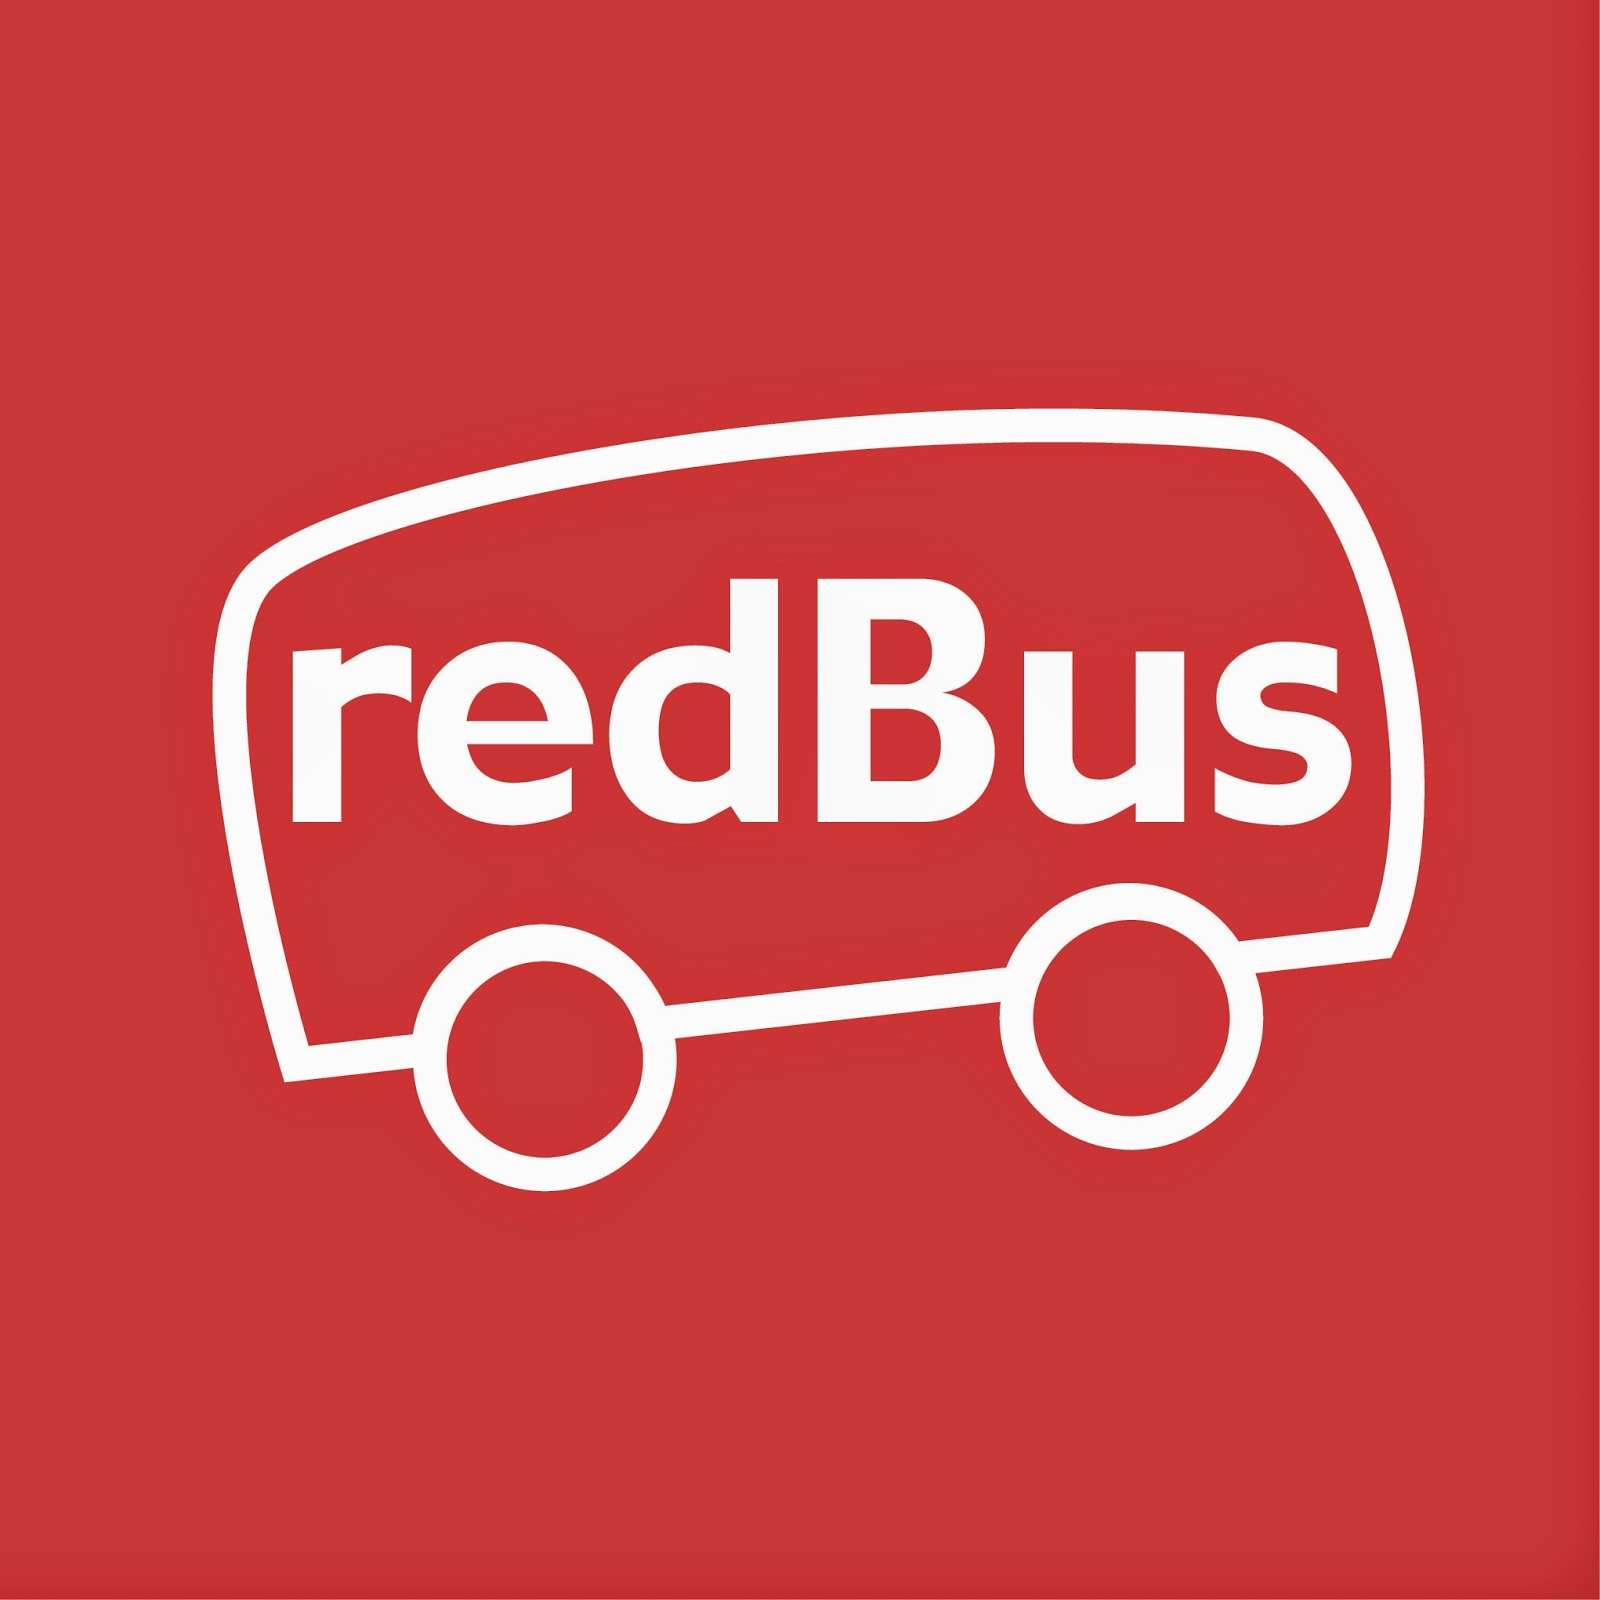 redBus is the world's largest online bus ticket booking platform trusted by millions of happy customers globally. redBus revolutionized online bus ticketing by strengthening its inventory of bus operators covering diverse routes in Singapore.